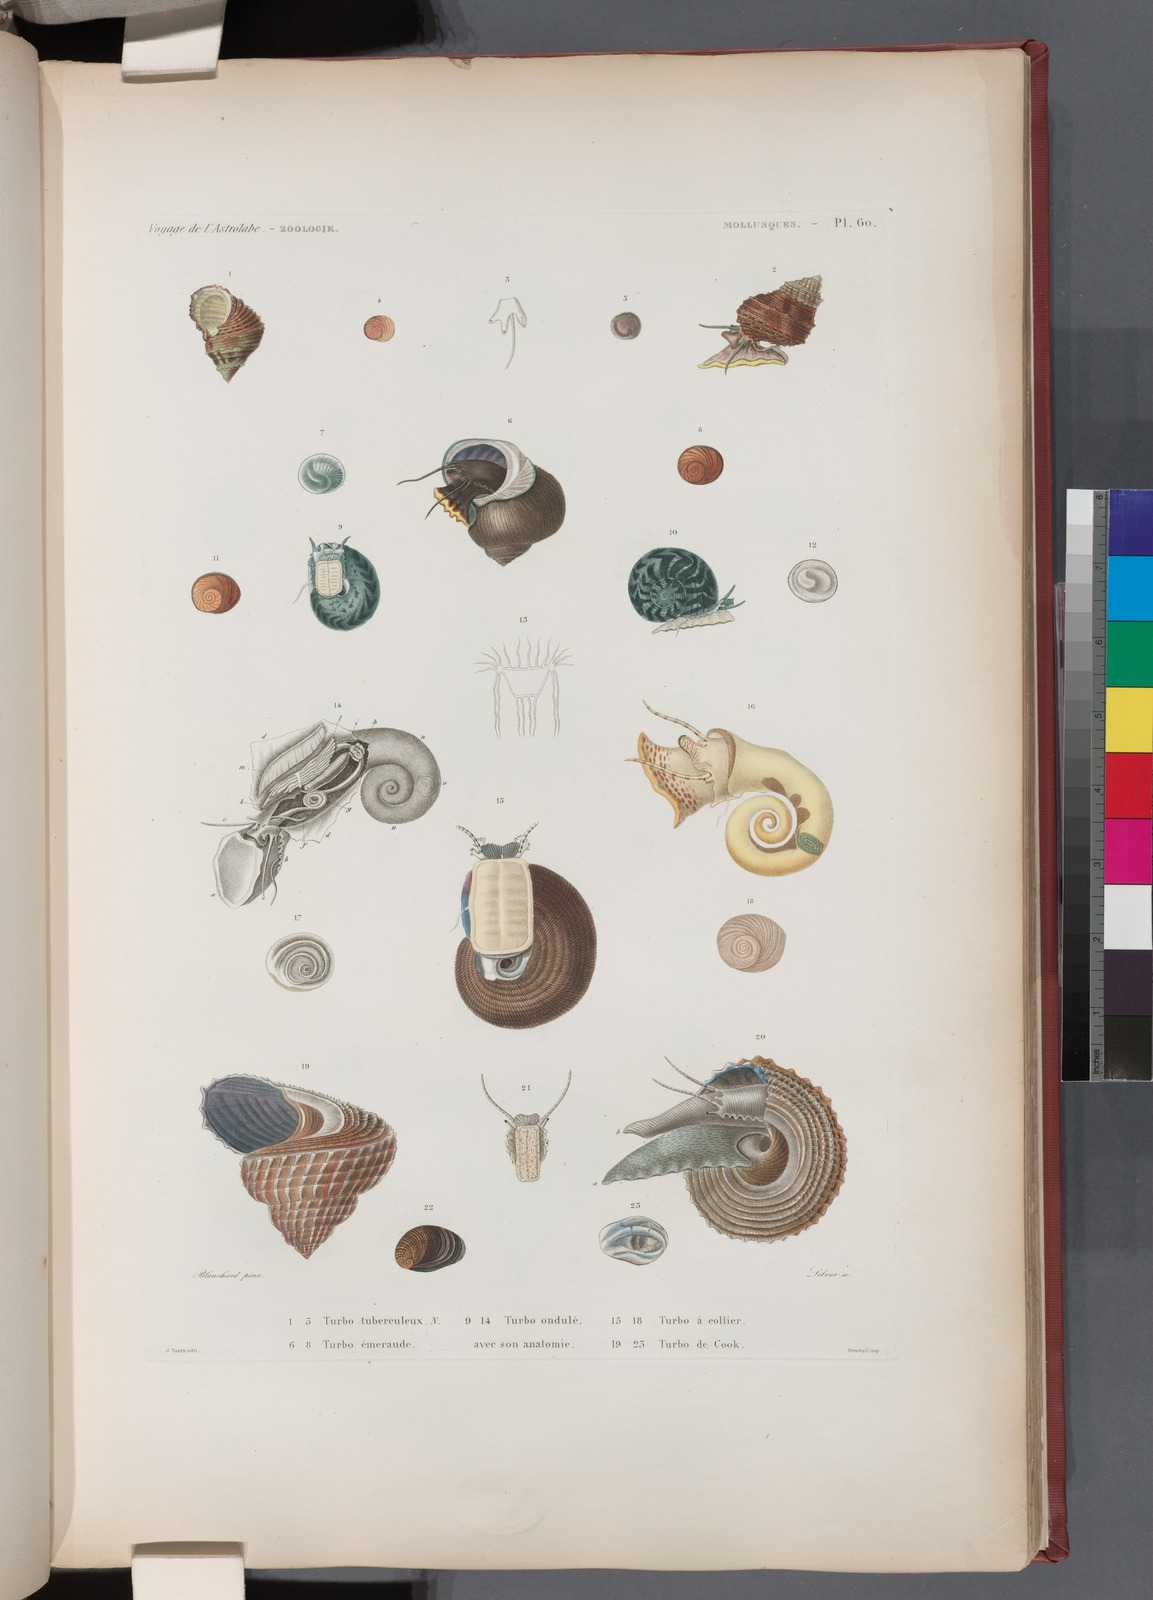 Mollusques: 1.-5. Turbo tubereculeux. N.; 6.- 8. Turbo émeraude; 9.- 14. Turbo ondulé, abec son anatomie; 15.- 18. Turbo à collier; 19.- 23. Turbo de Cook.